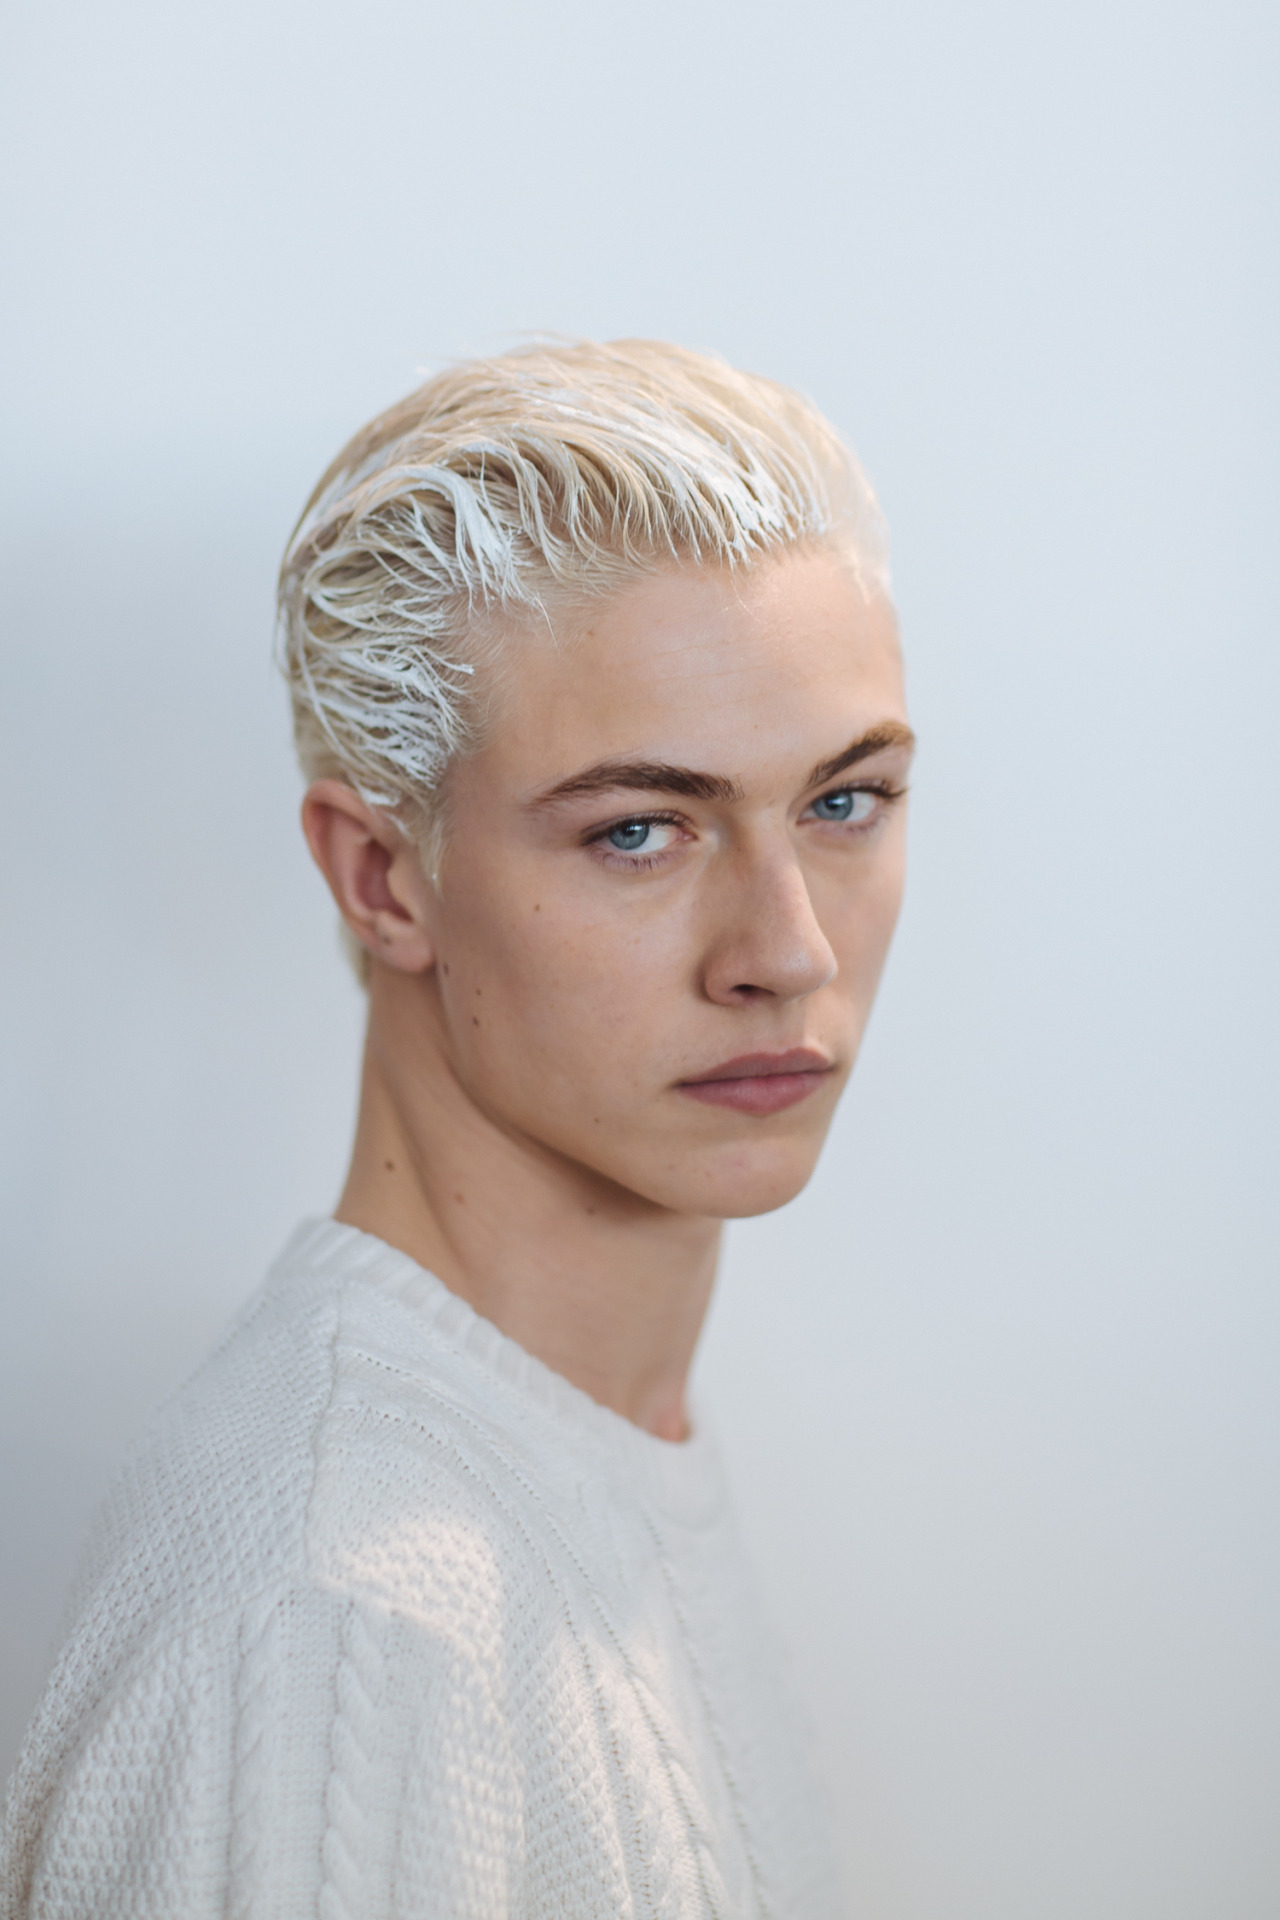 Lucky Blue Smith Wallpapers High Quality Download Free